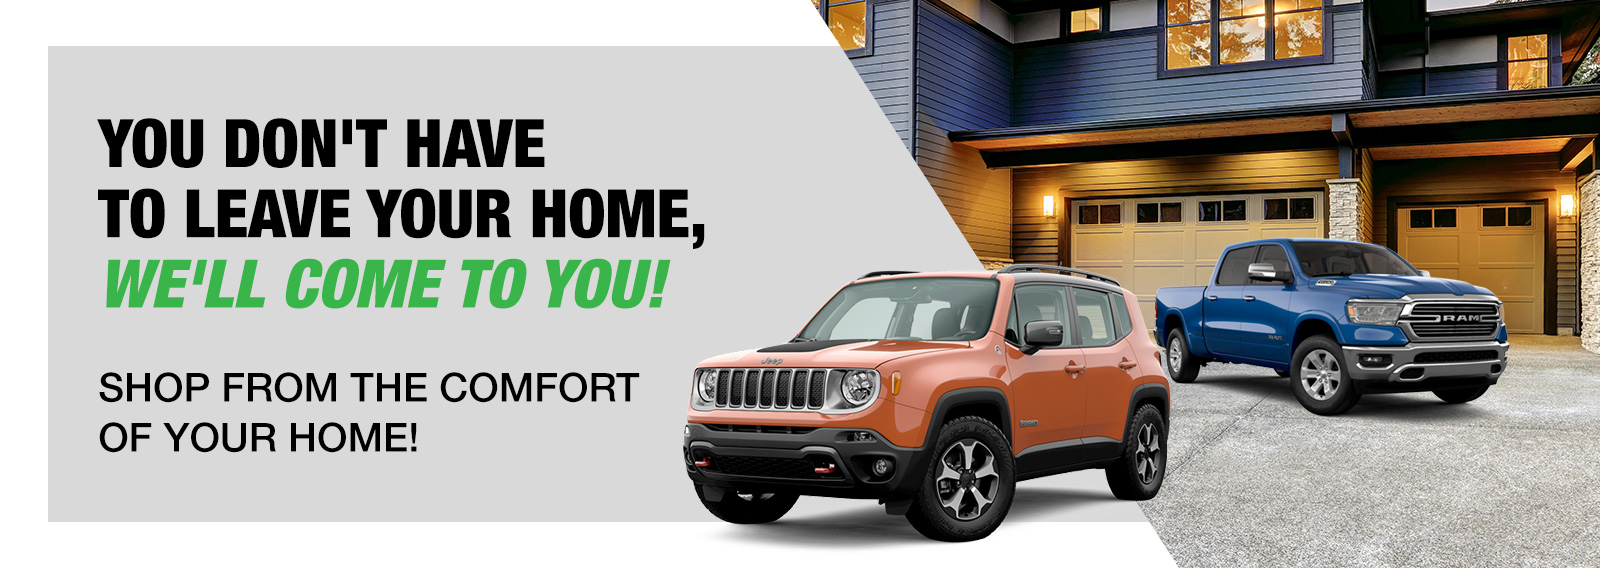 You Don't Have To Leave Your Home, We'll Come To You!